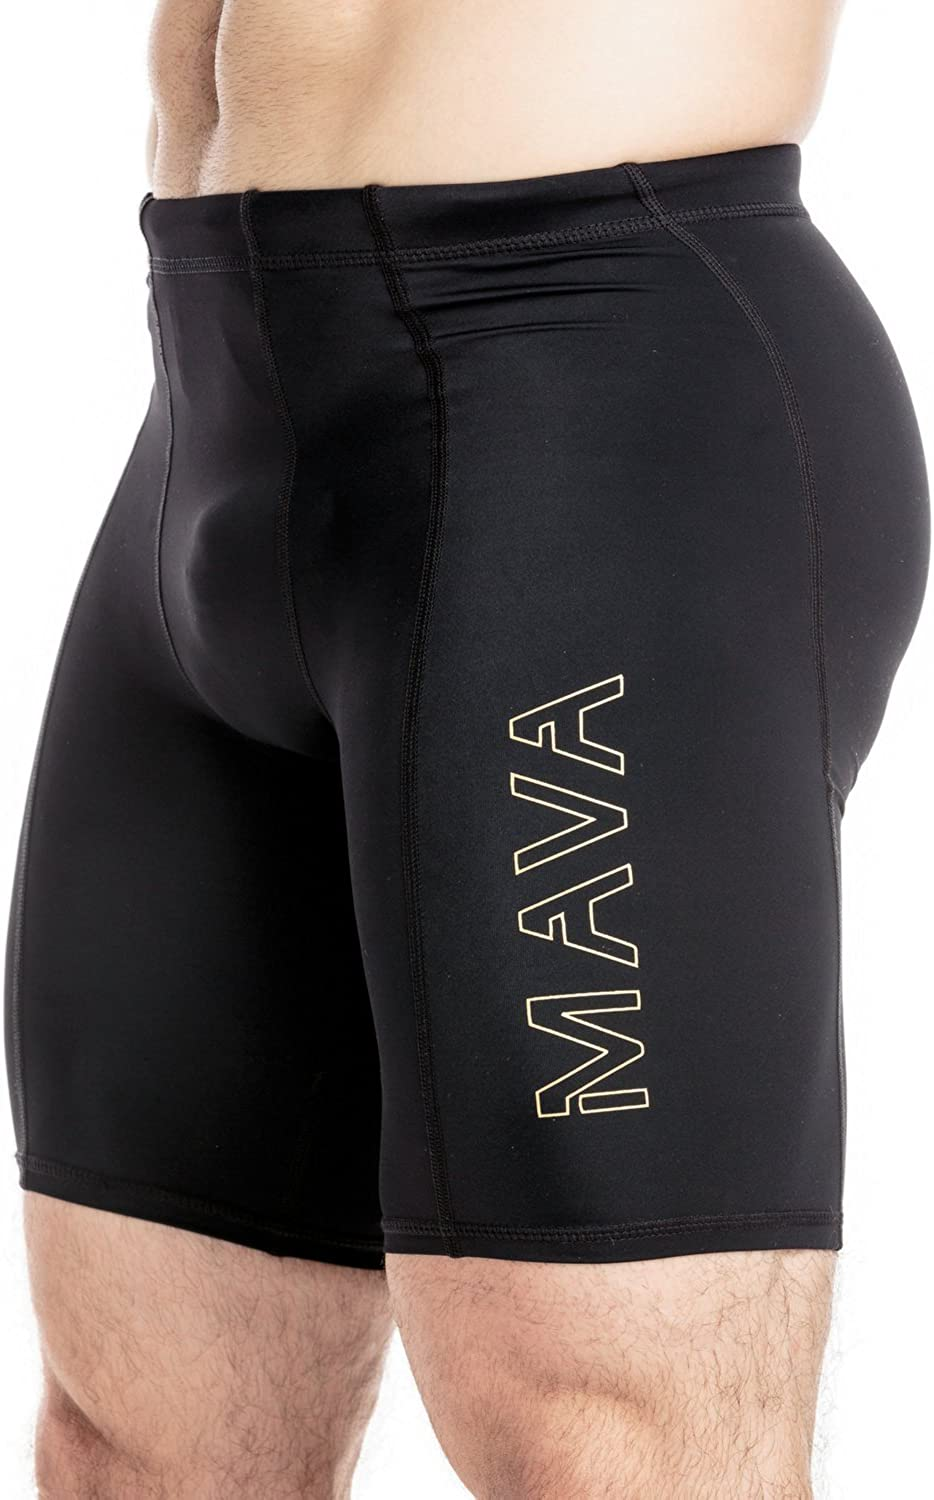 MAVA Men's Compression Shorts - Performance Tights for Workout, Running & Sports